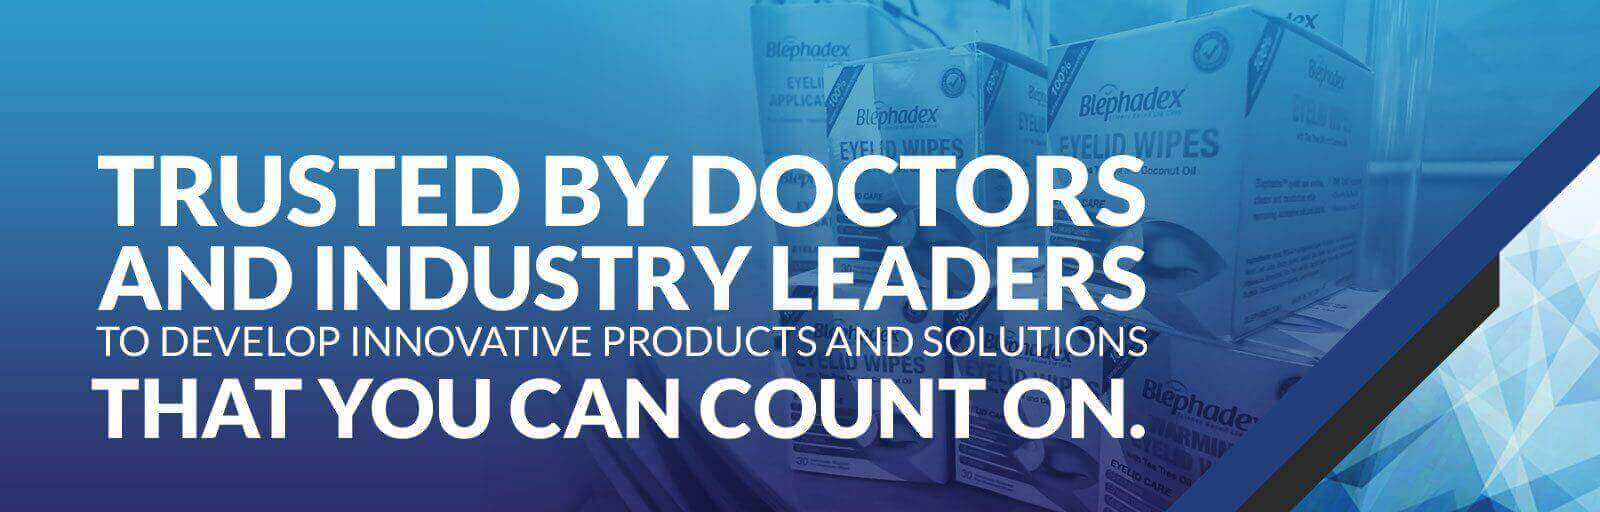 Trusted Doctors